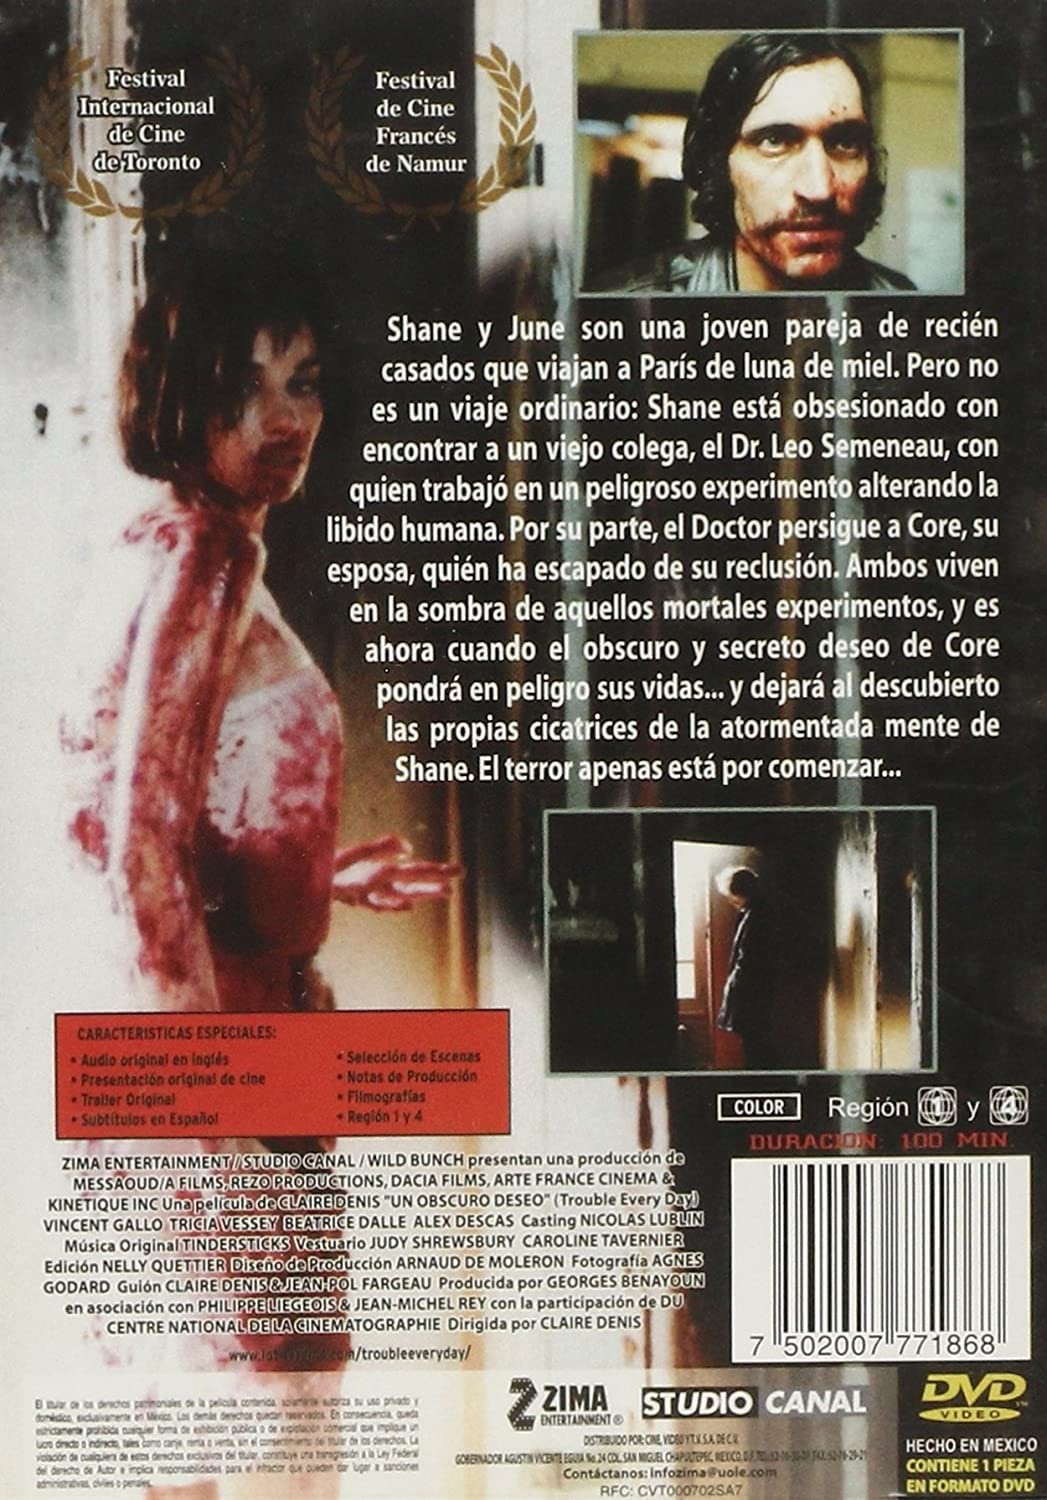 Amazon.com: Un Obscuro Deseo [Regions 1 & 4]: Vincent Gallo, Claire Denis, Tricia Vessey, Béatrice Dalle, Alex Descas, Florence Loiret-Caille: Movies & TV